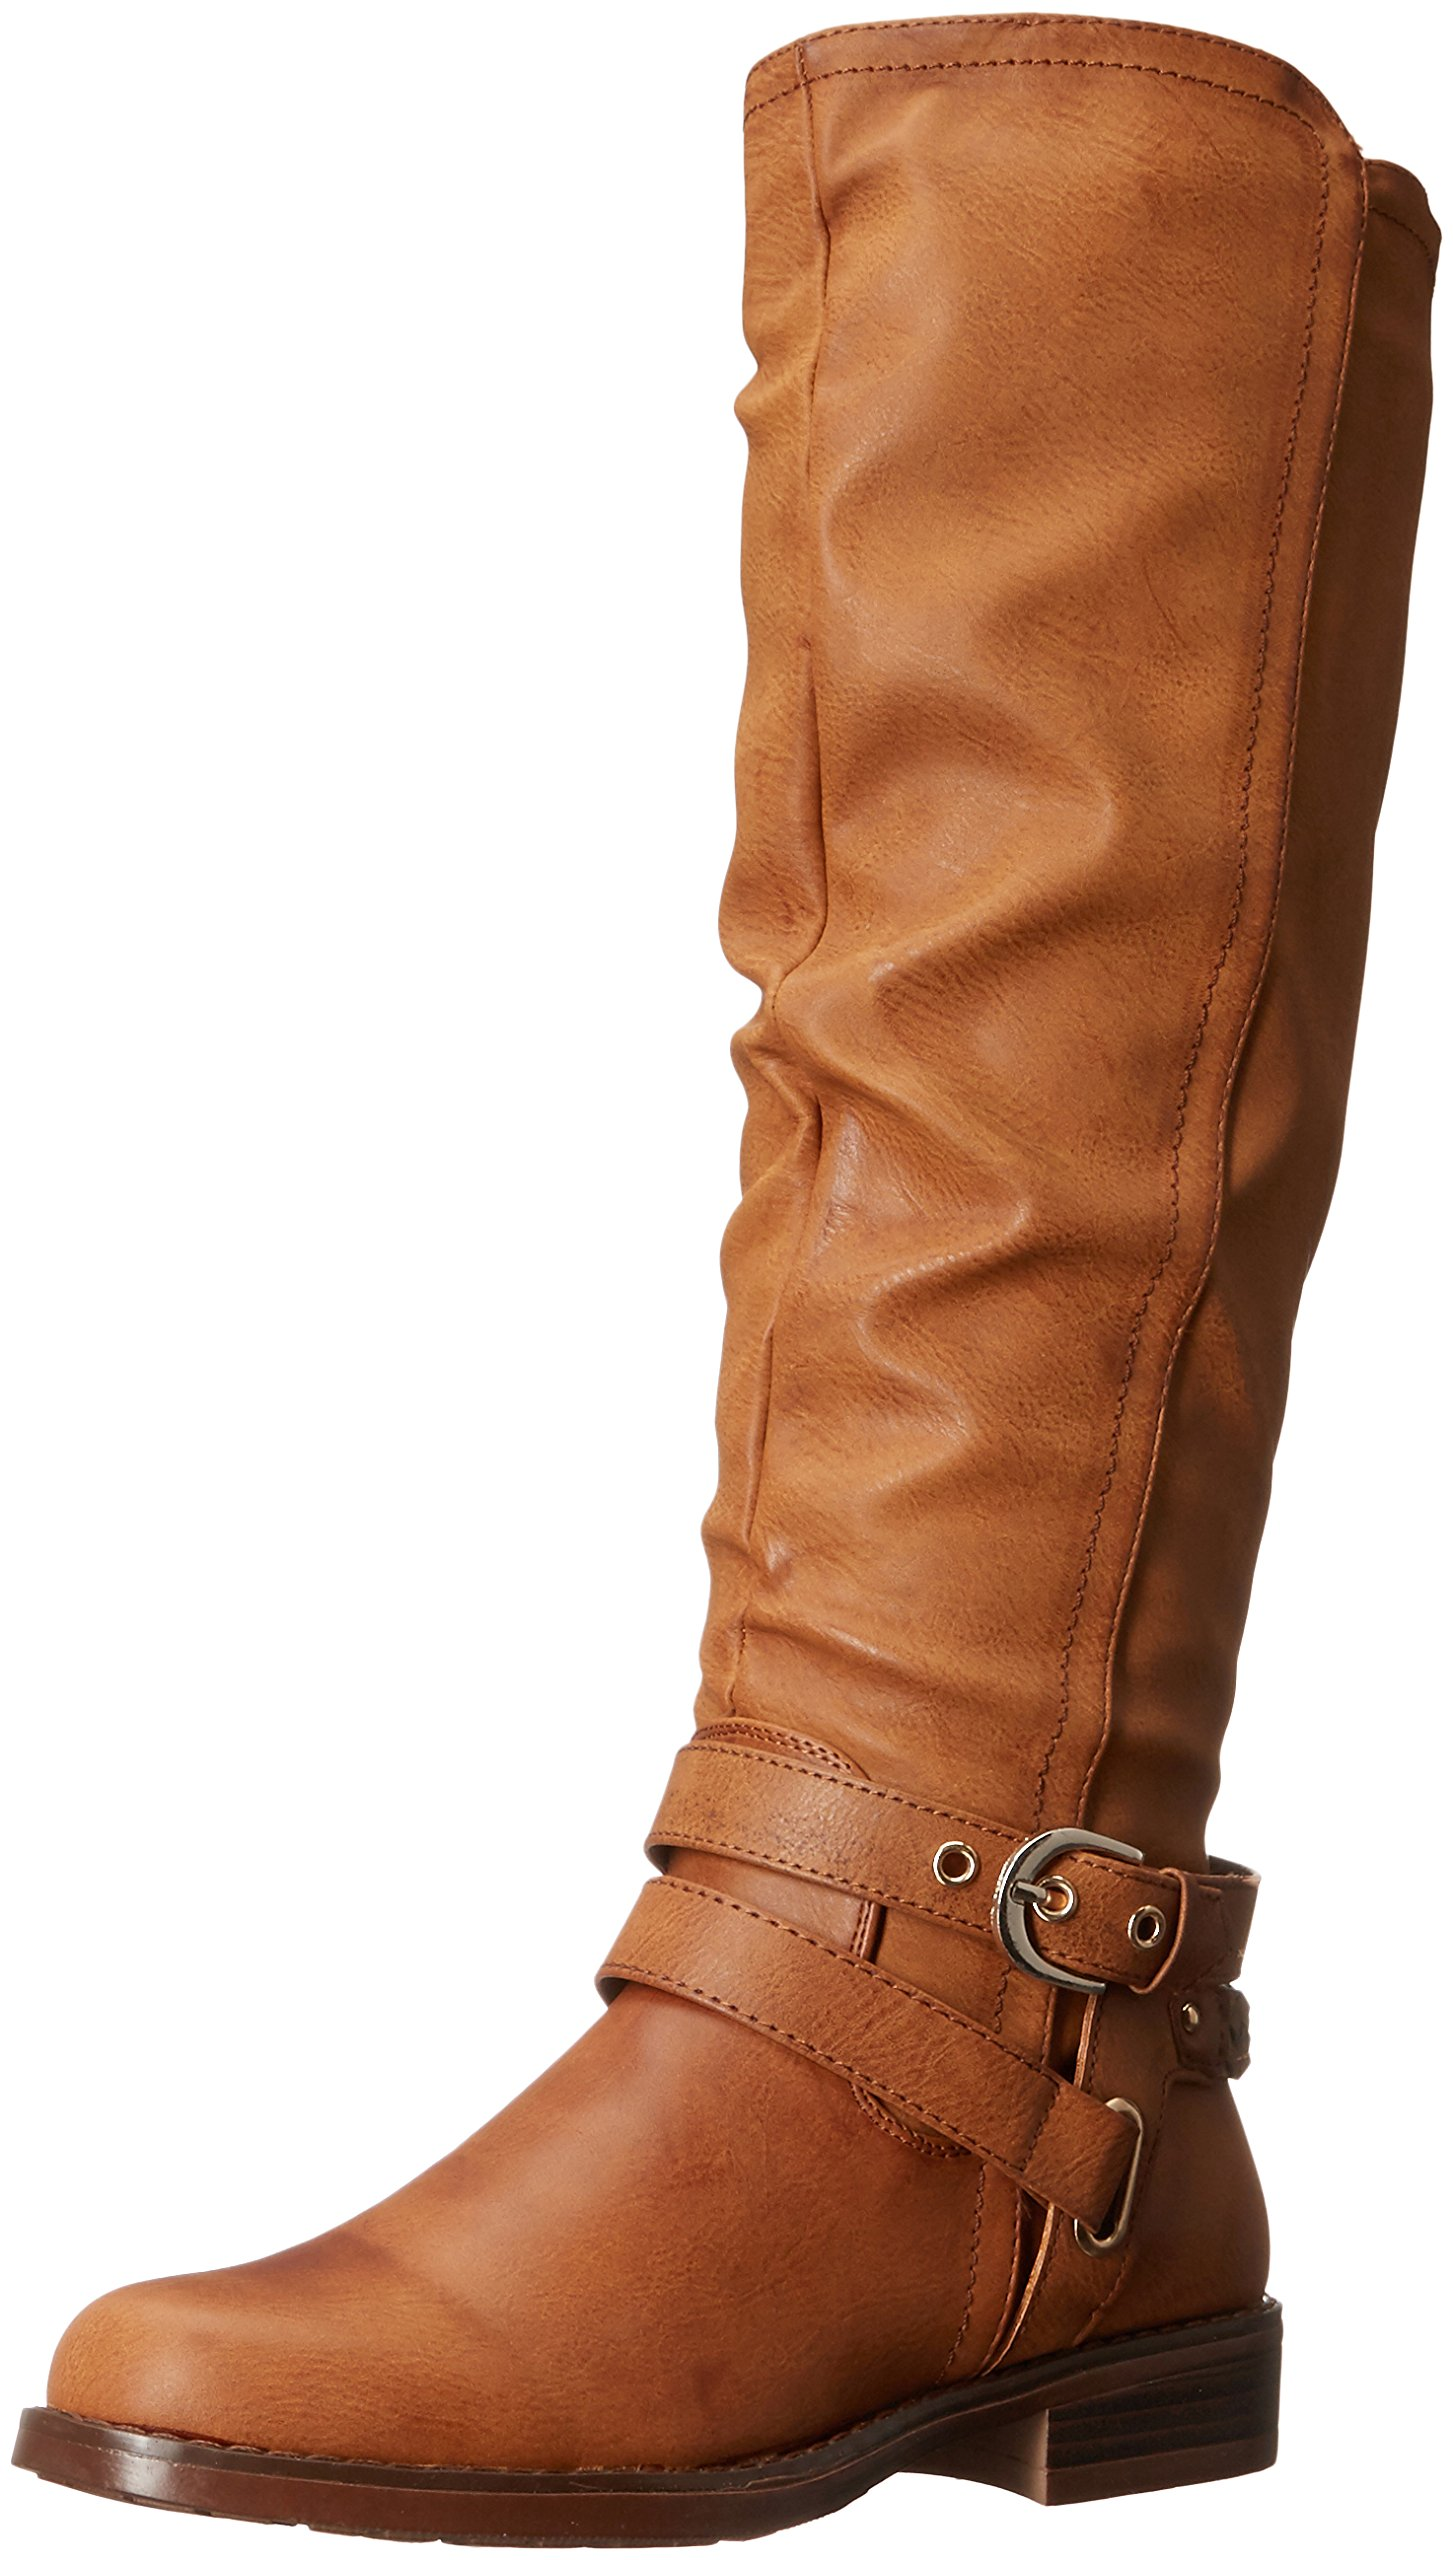 XOXO Women's Martin Wc Riding Boot, Tan, 8 M US